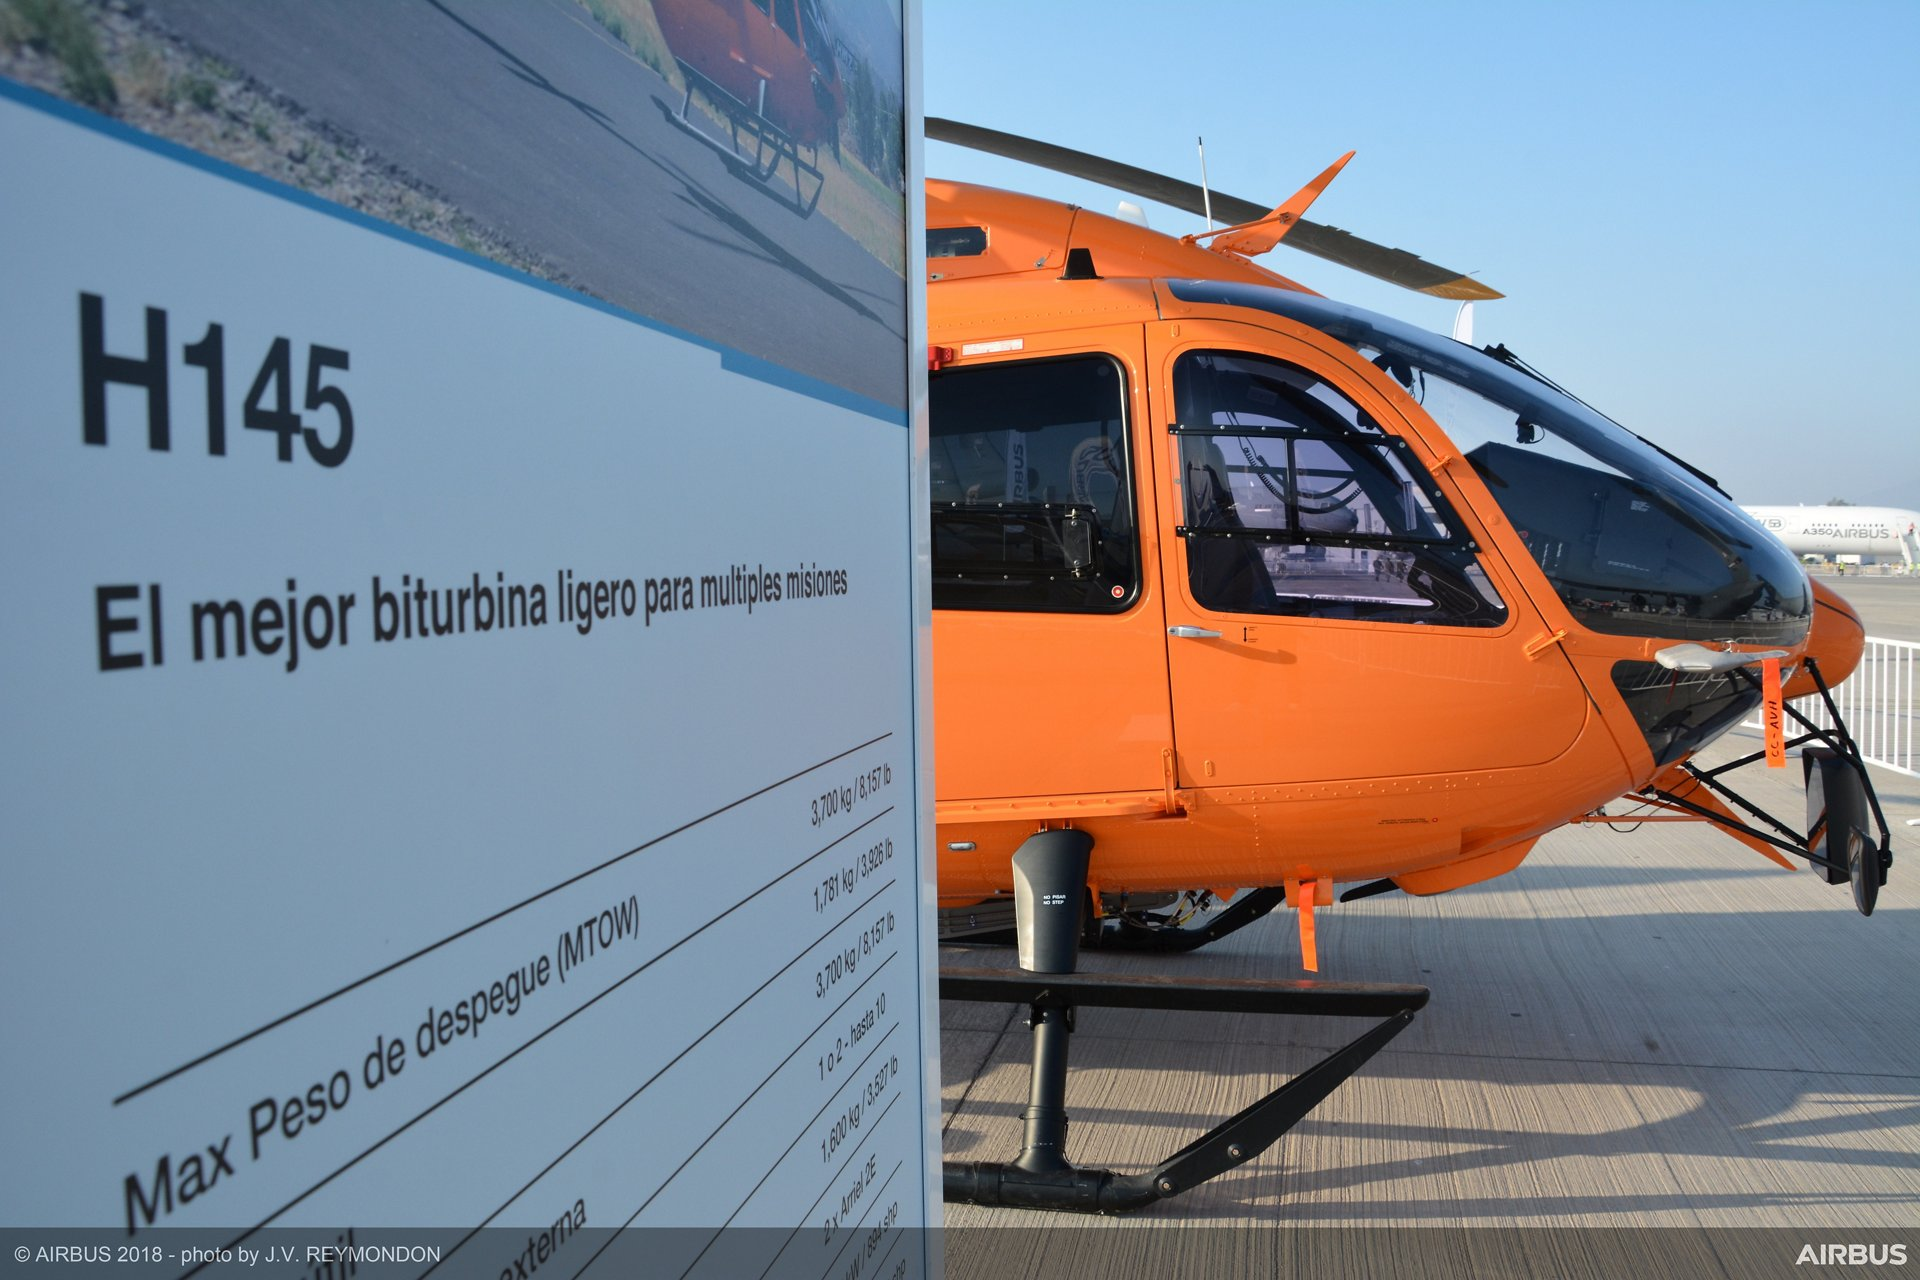 H145 Ecocopter